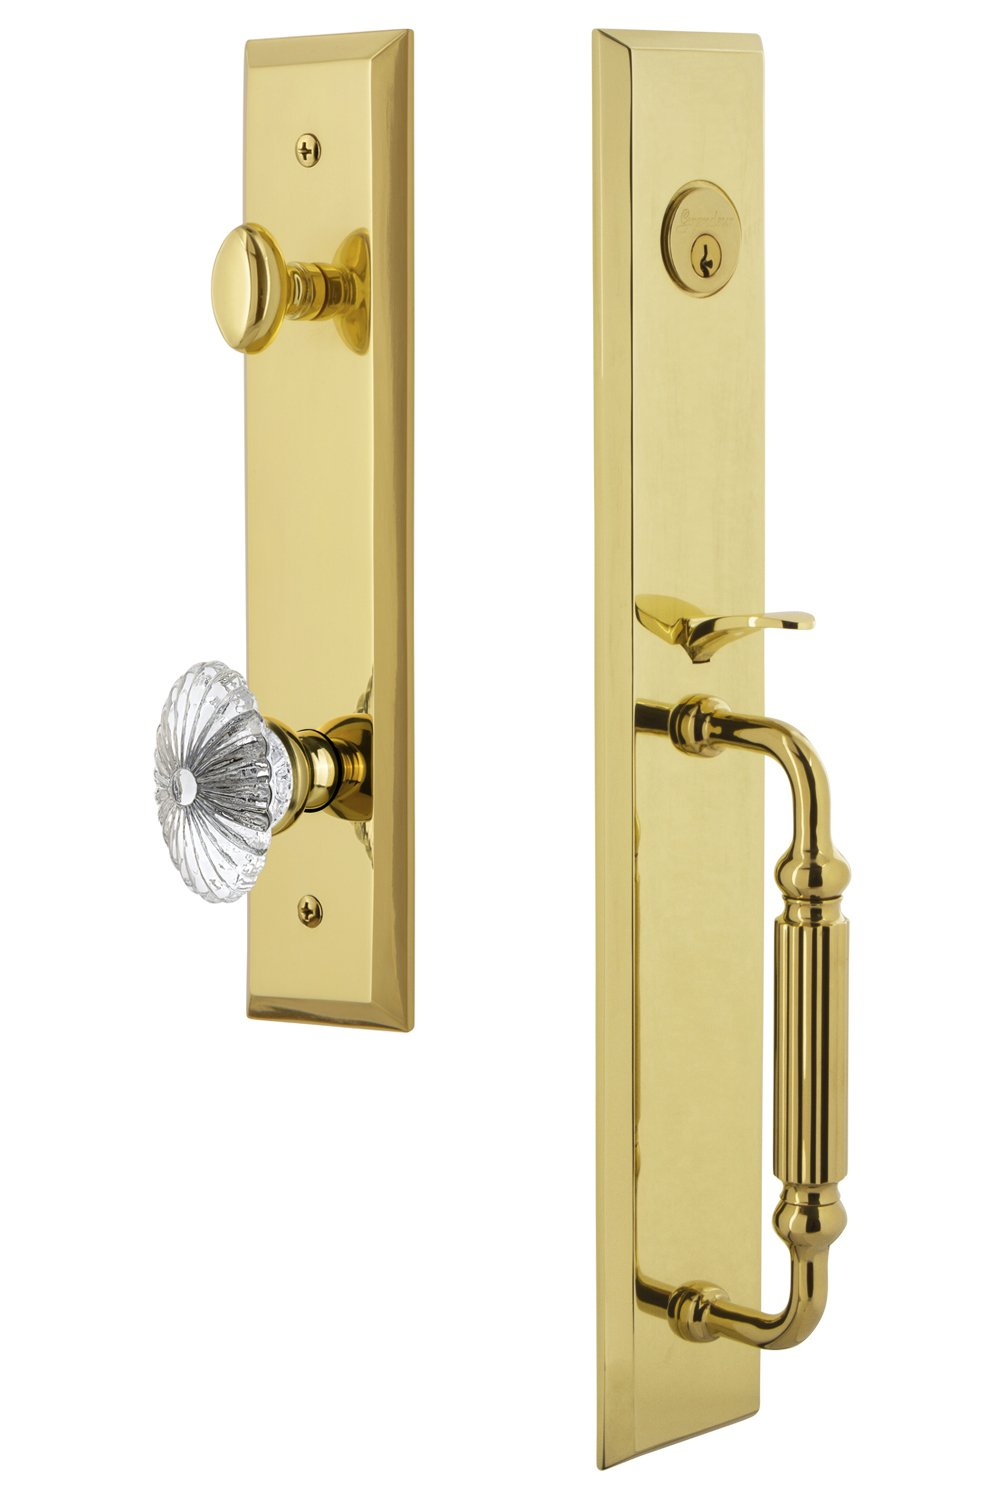 Single Cylinder Lock Backset Size-2.375 Grandeur 845921 Hardware Fifth Avenue One-Piece Handleset with F Grip and Burgundy Knob in Timeless Bronze